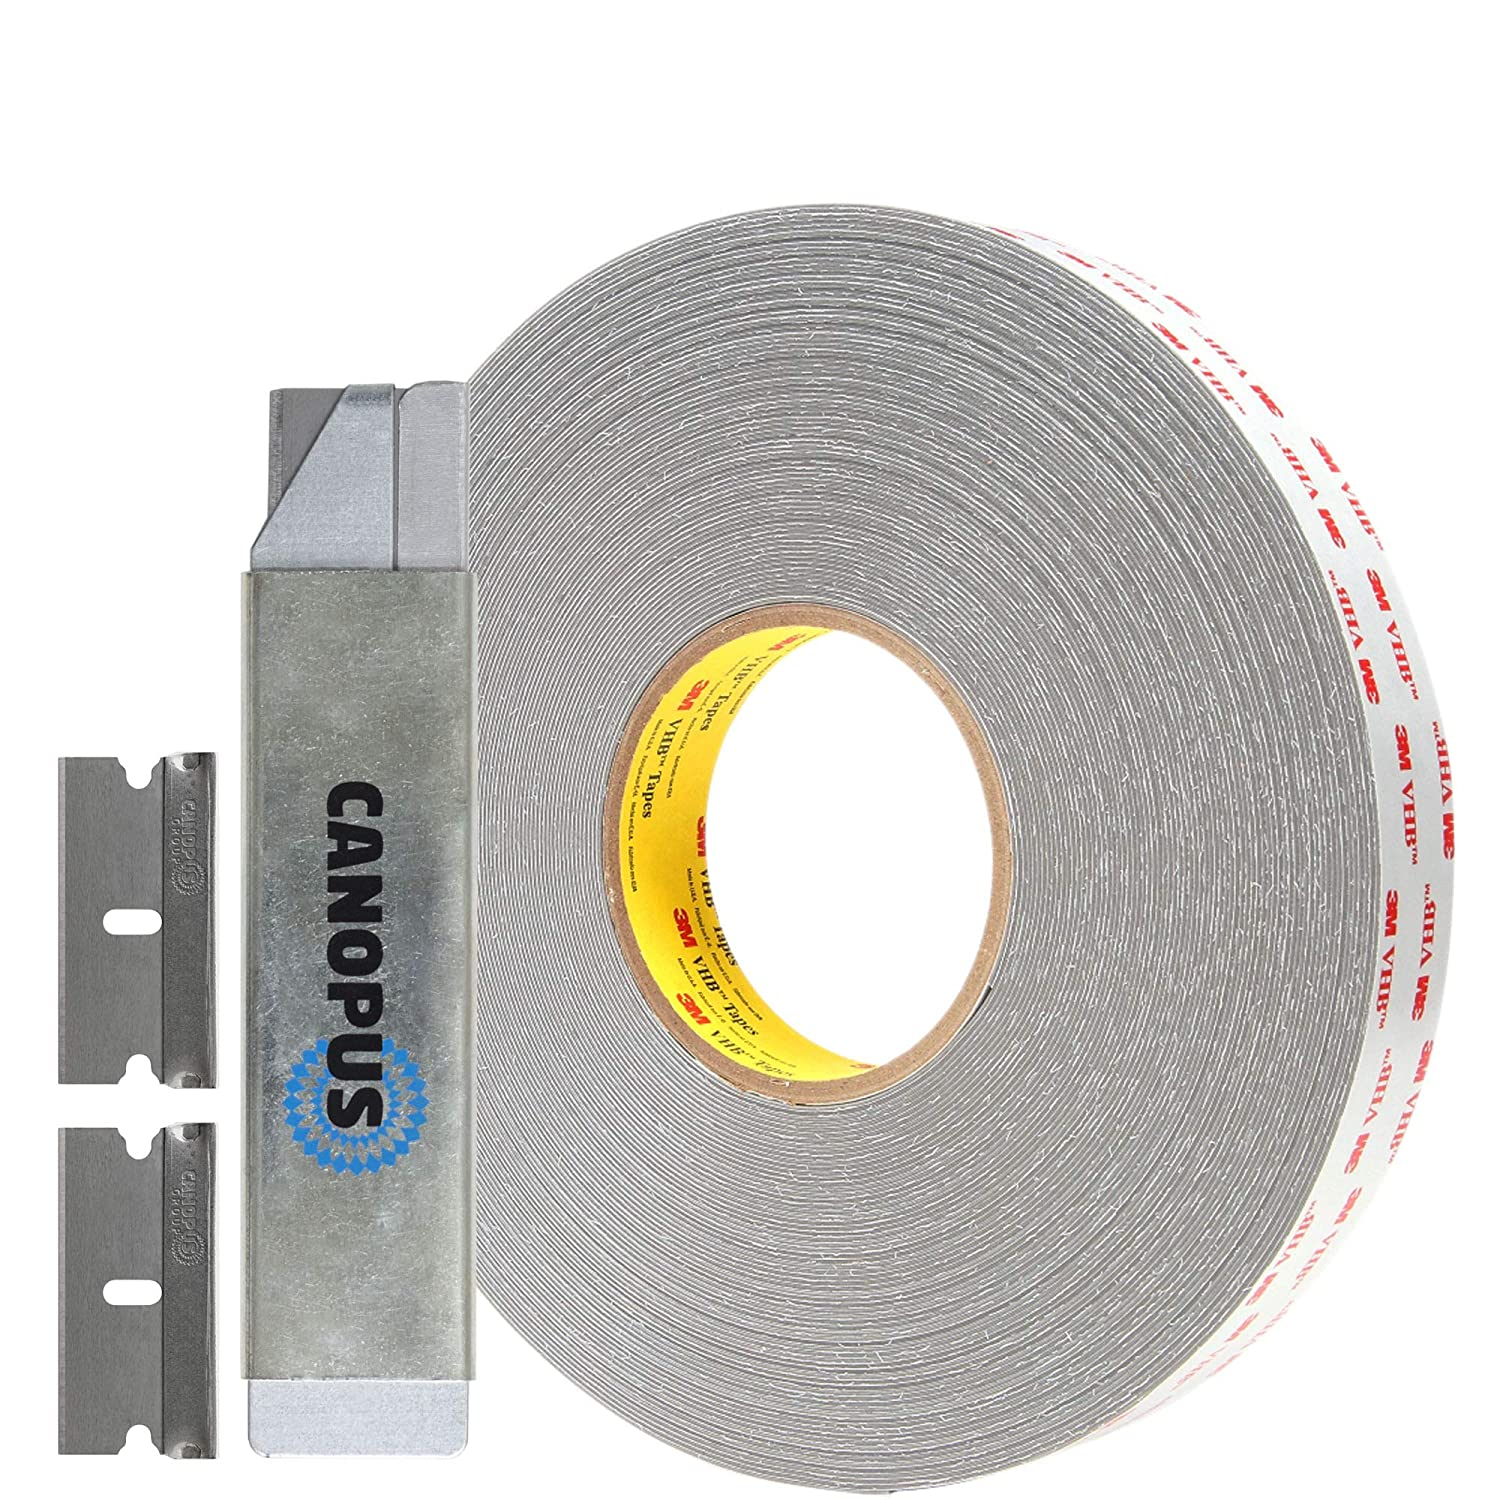 3M Double Sided Tape Heavy Duty, VHB Outdoor Indoor Mounting Tape, Waterproof Acrylic Adhesive Tape, Converted from RP45 Gray roll, (3/4 in x 5 yd)